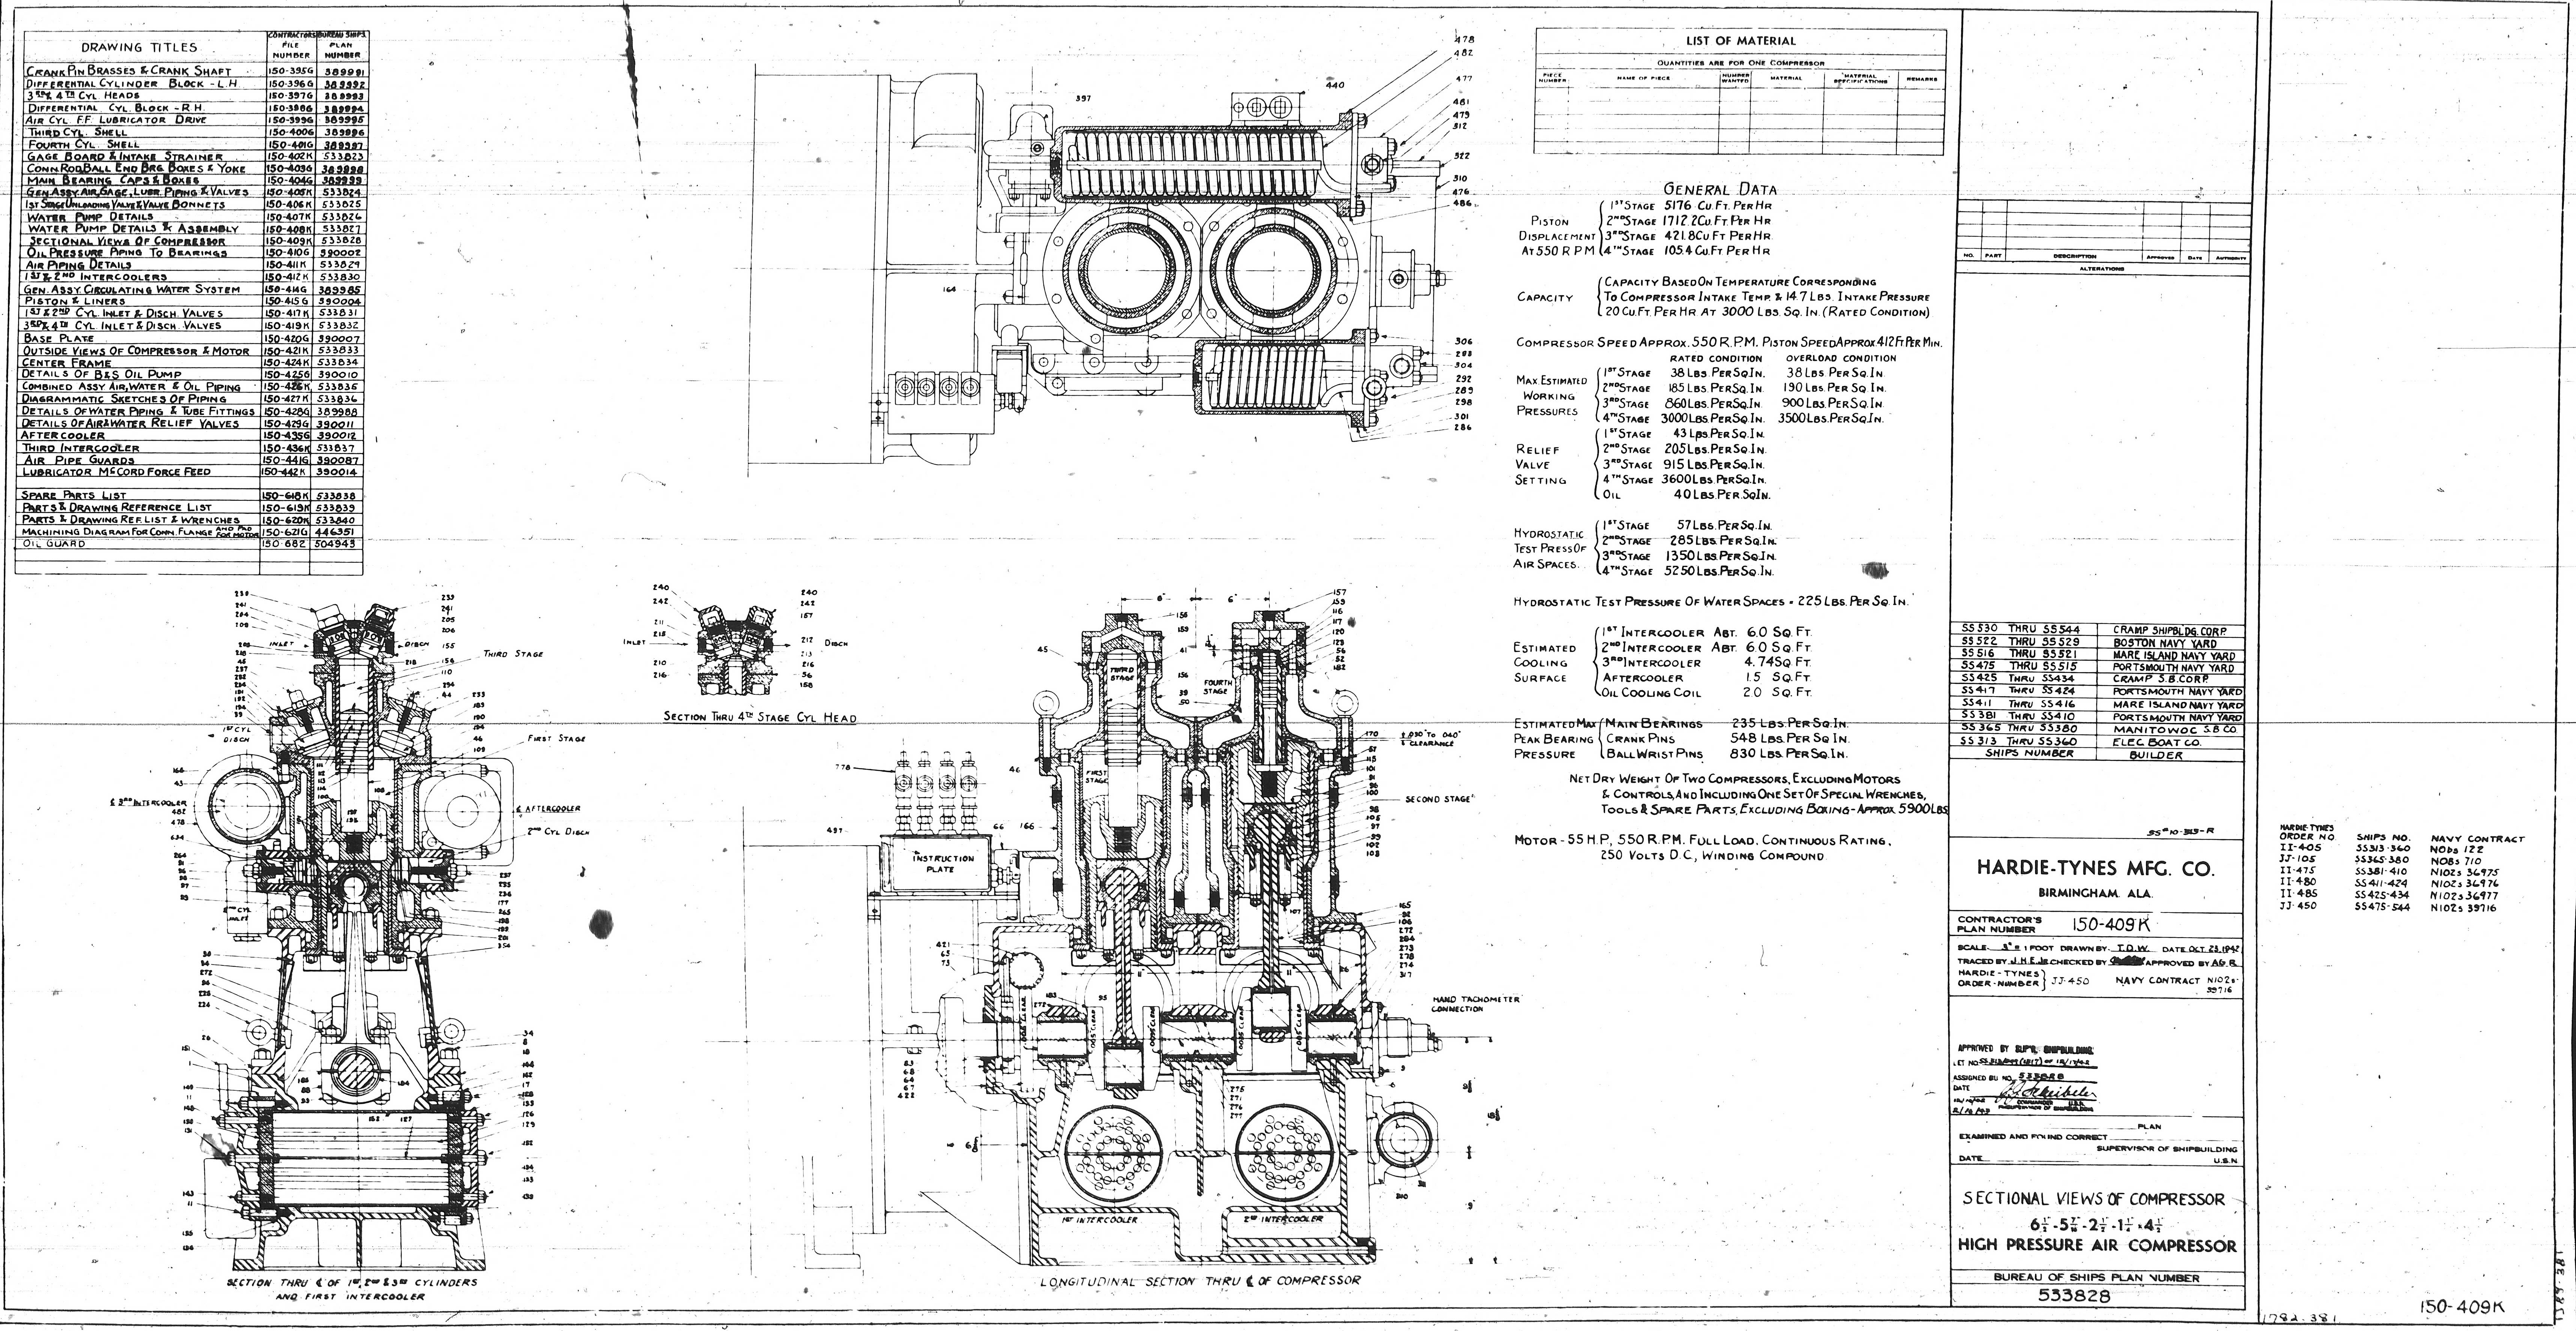 Uss Pampanito High Pressure Air Compressor Drawings